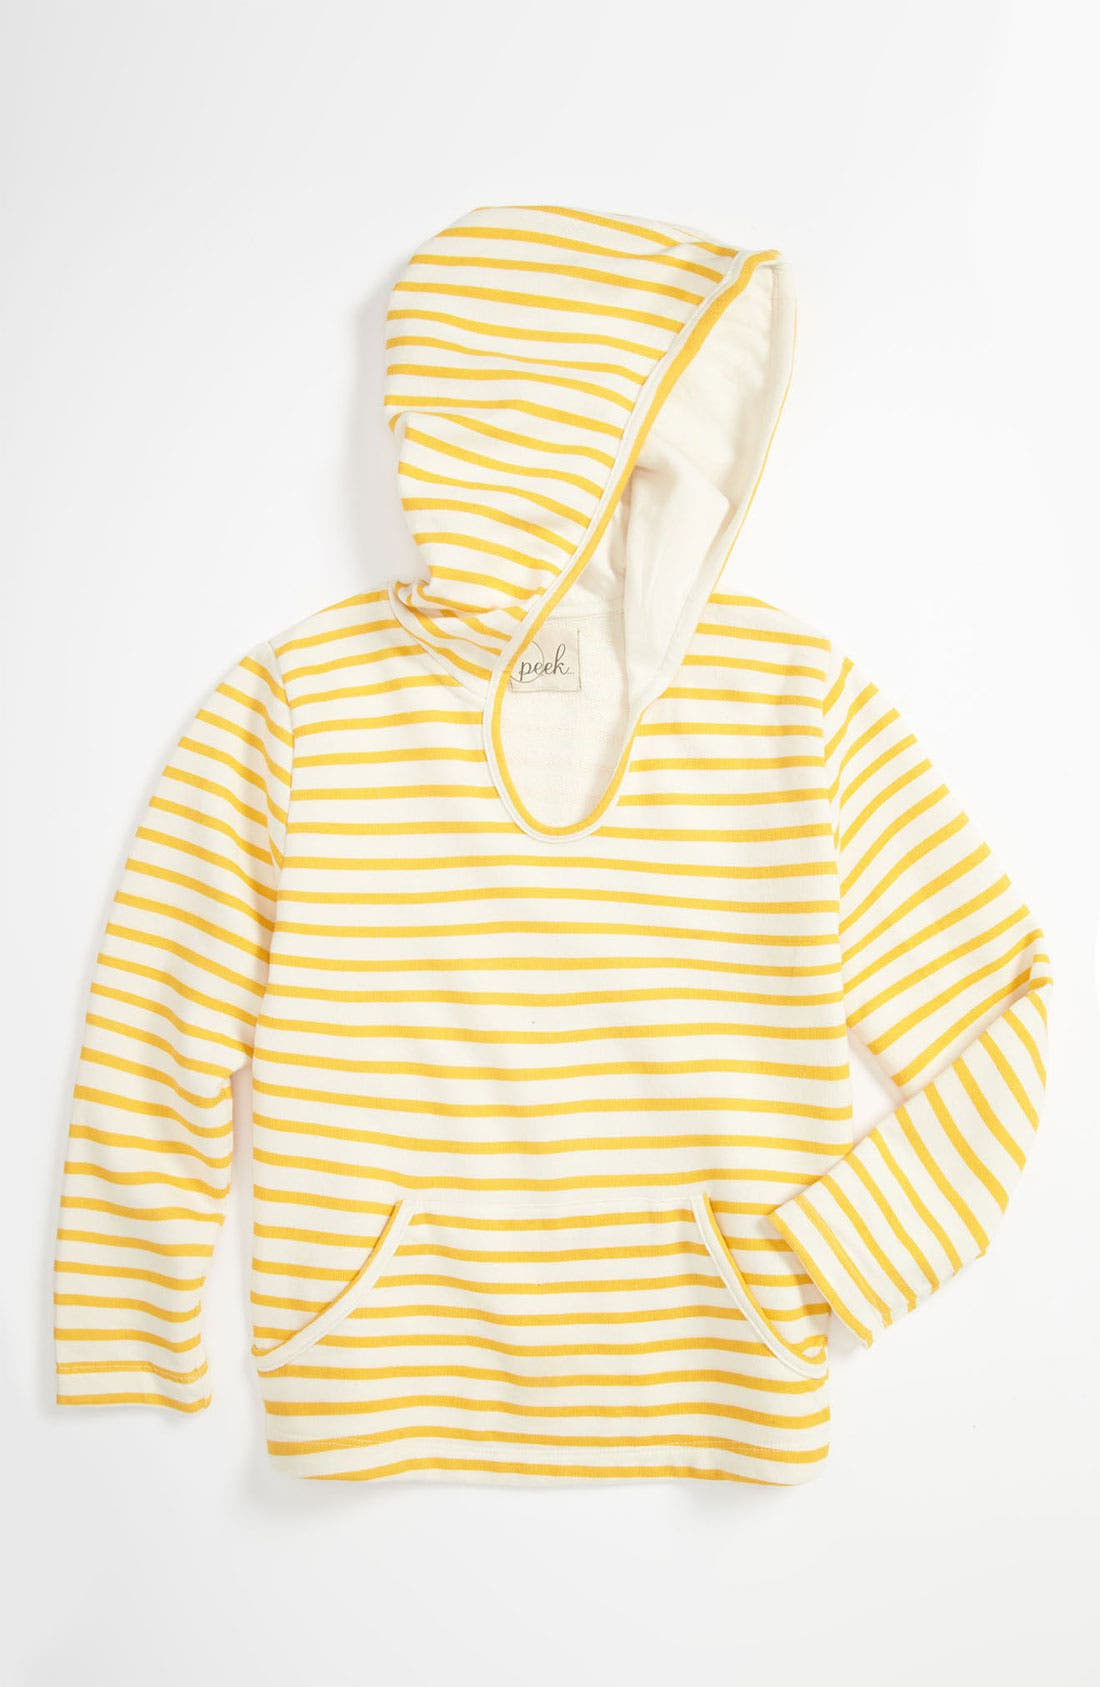 Main Image - Peek 'Flag' Hoodie (Toddler, Little Girls & Big Girls)